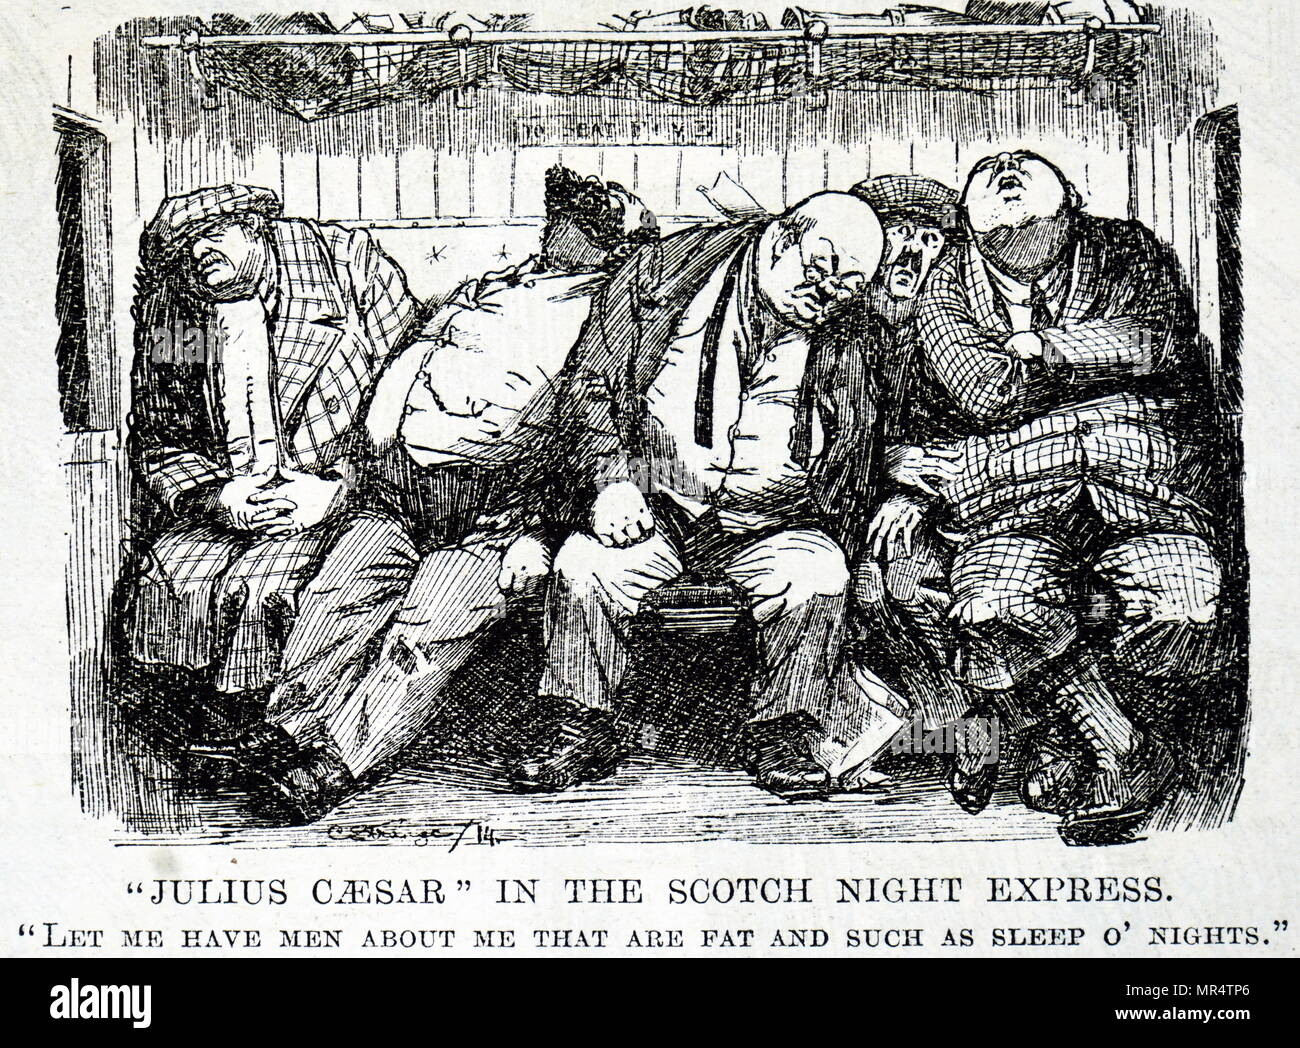 Cartoon commenting on the lack of comfort on railway transport - a skinny gentleman is squashed between other fat passengers. Below is a quote by Julius Caesar 'Let me have men about me that are fat and such as sleep o'nights'. Dated 19th century - Stock Image